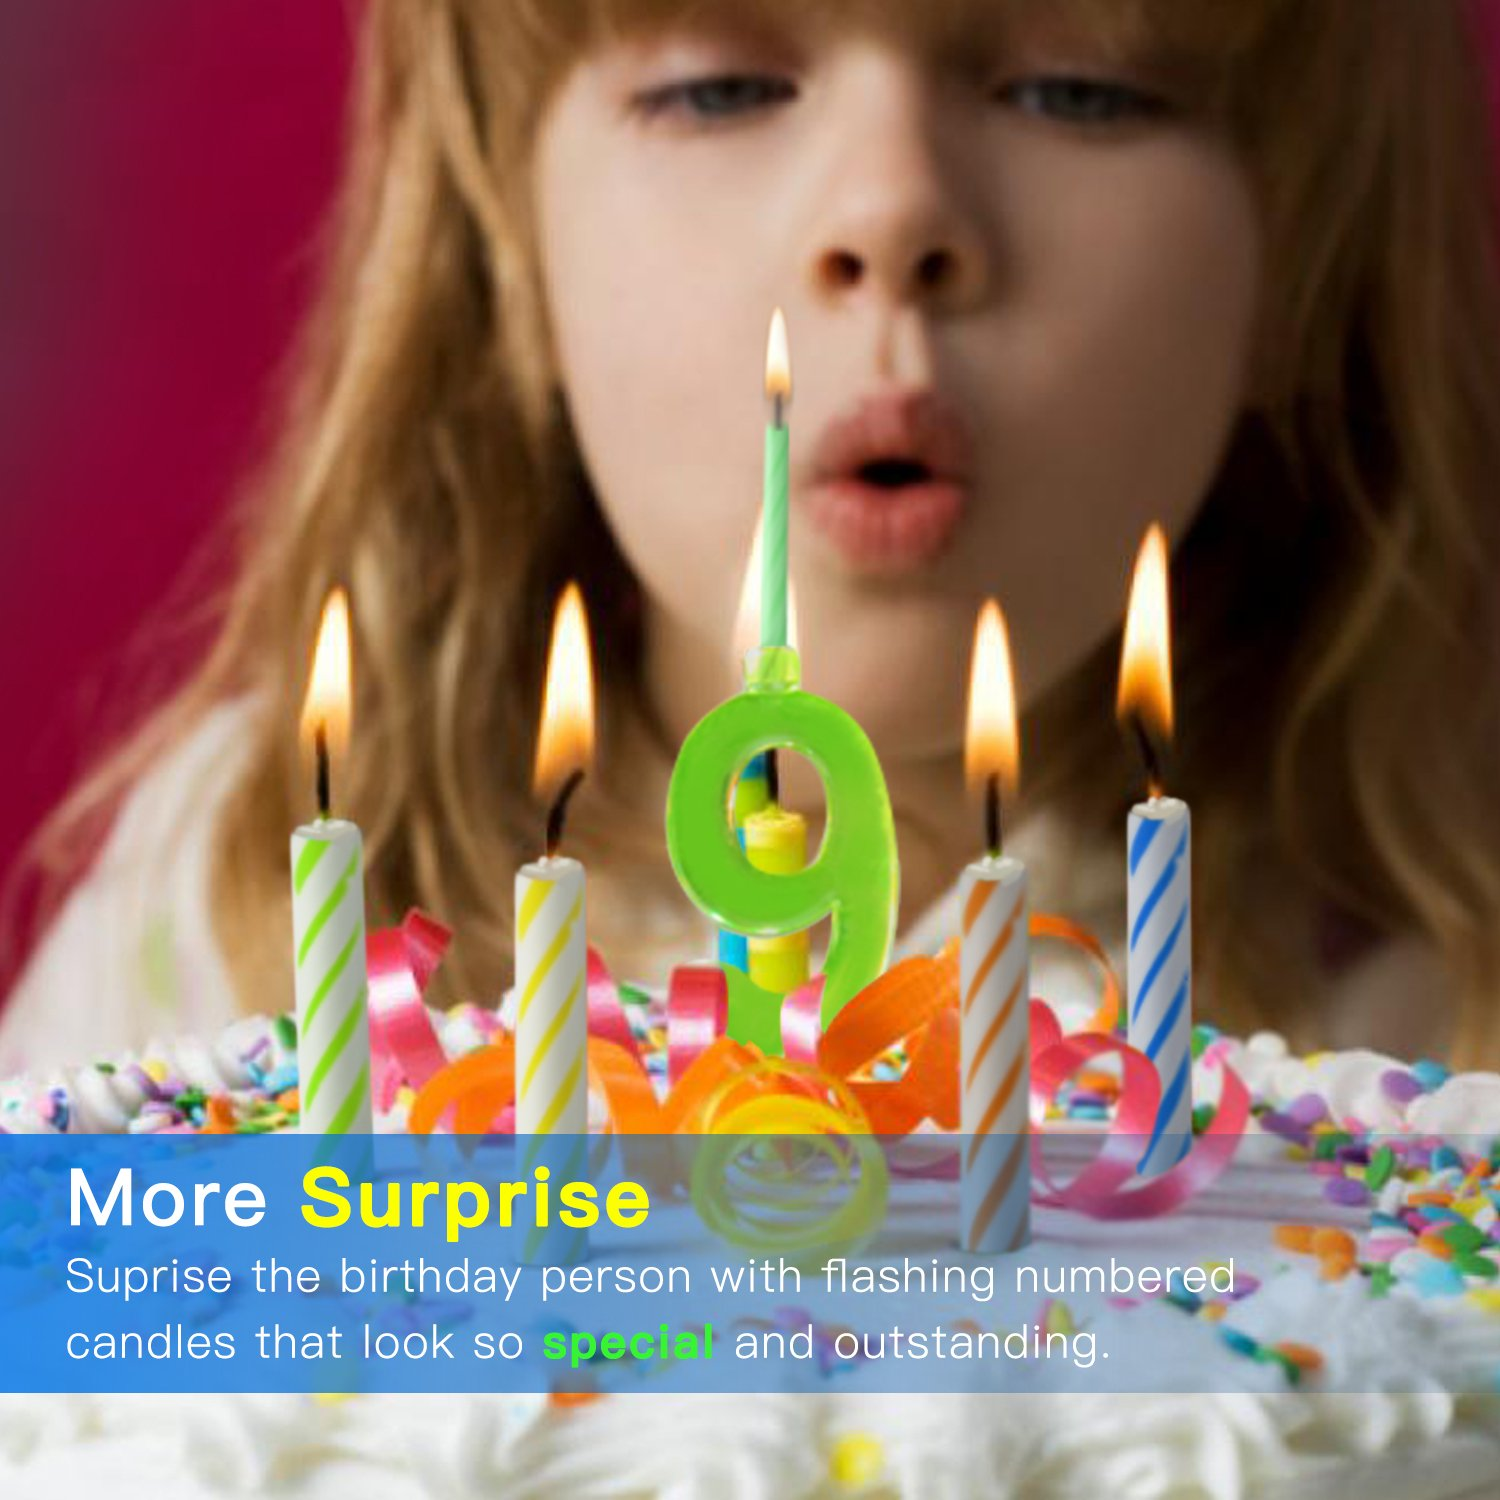 Novelty Place Multicolor Flashing Number Candle Set Color Changing LED Birthday Cake Topper With 4 Wax Candles 1